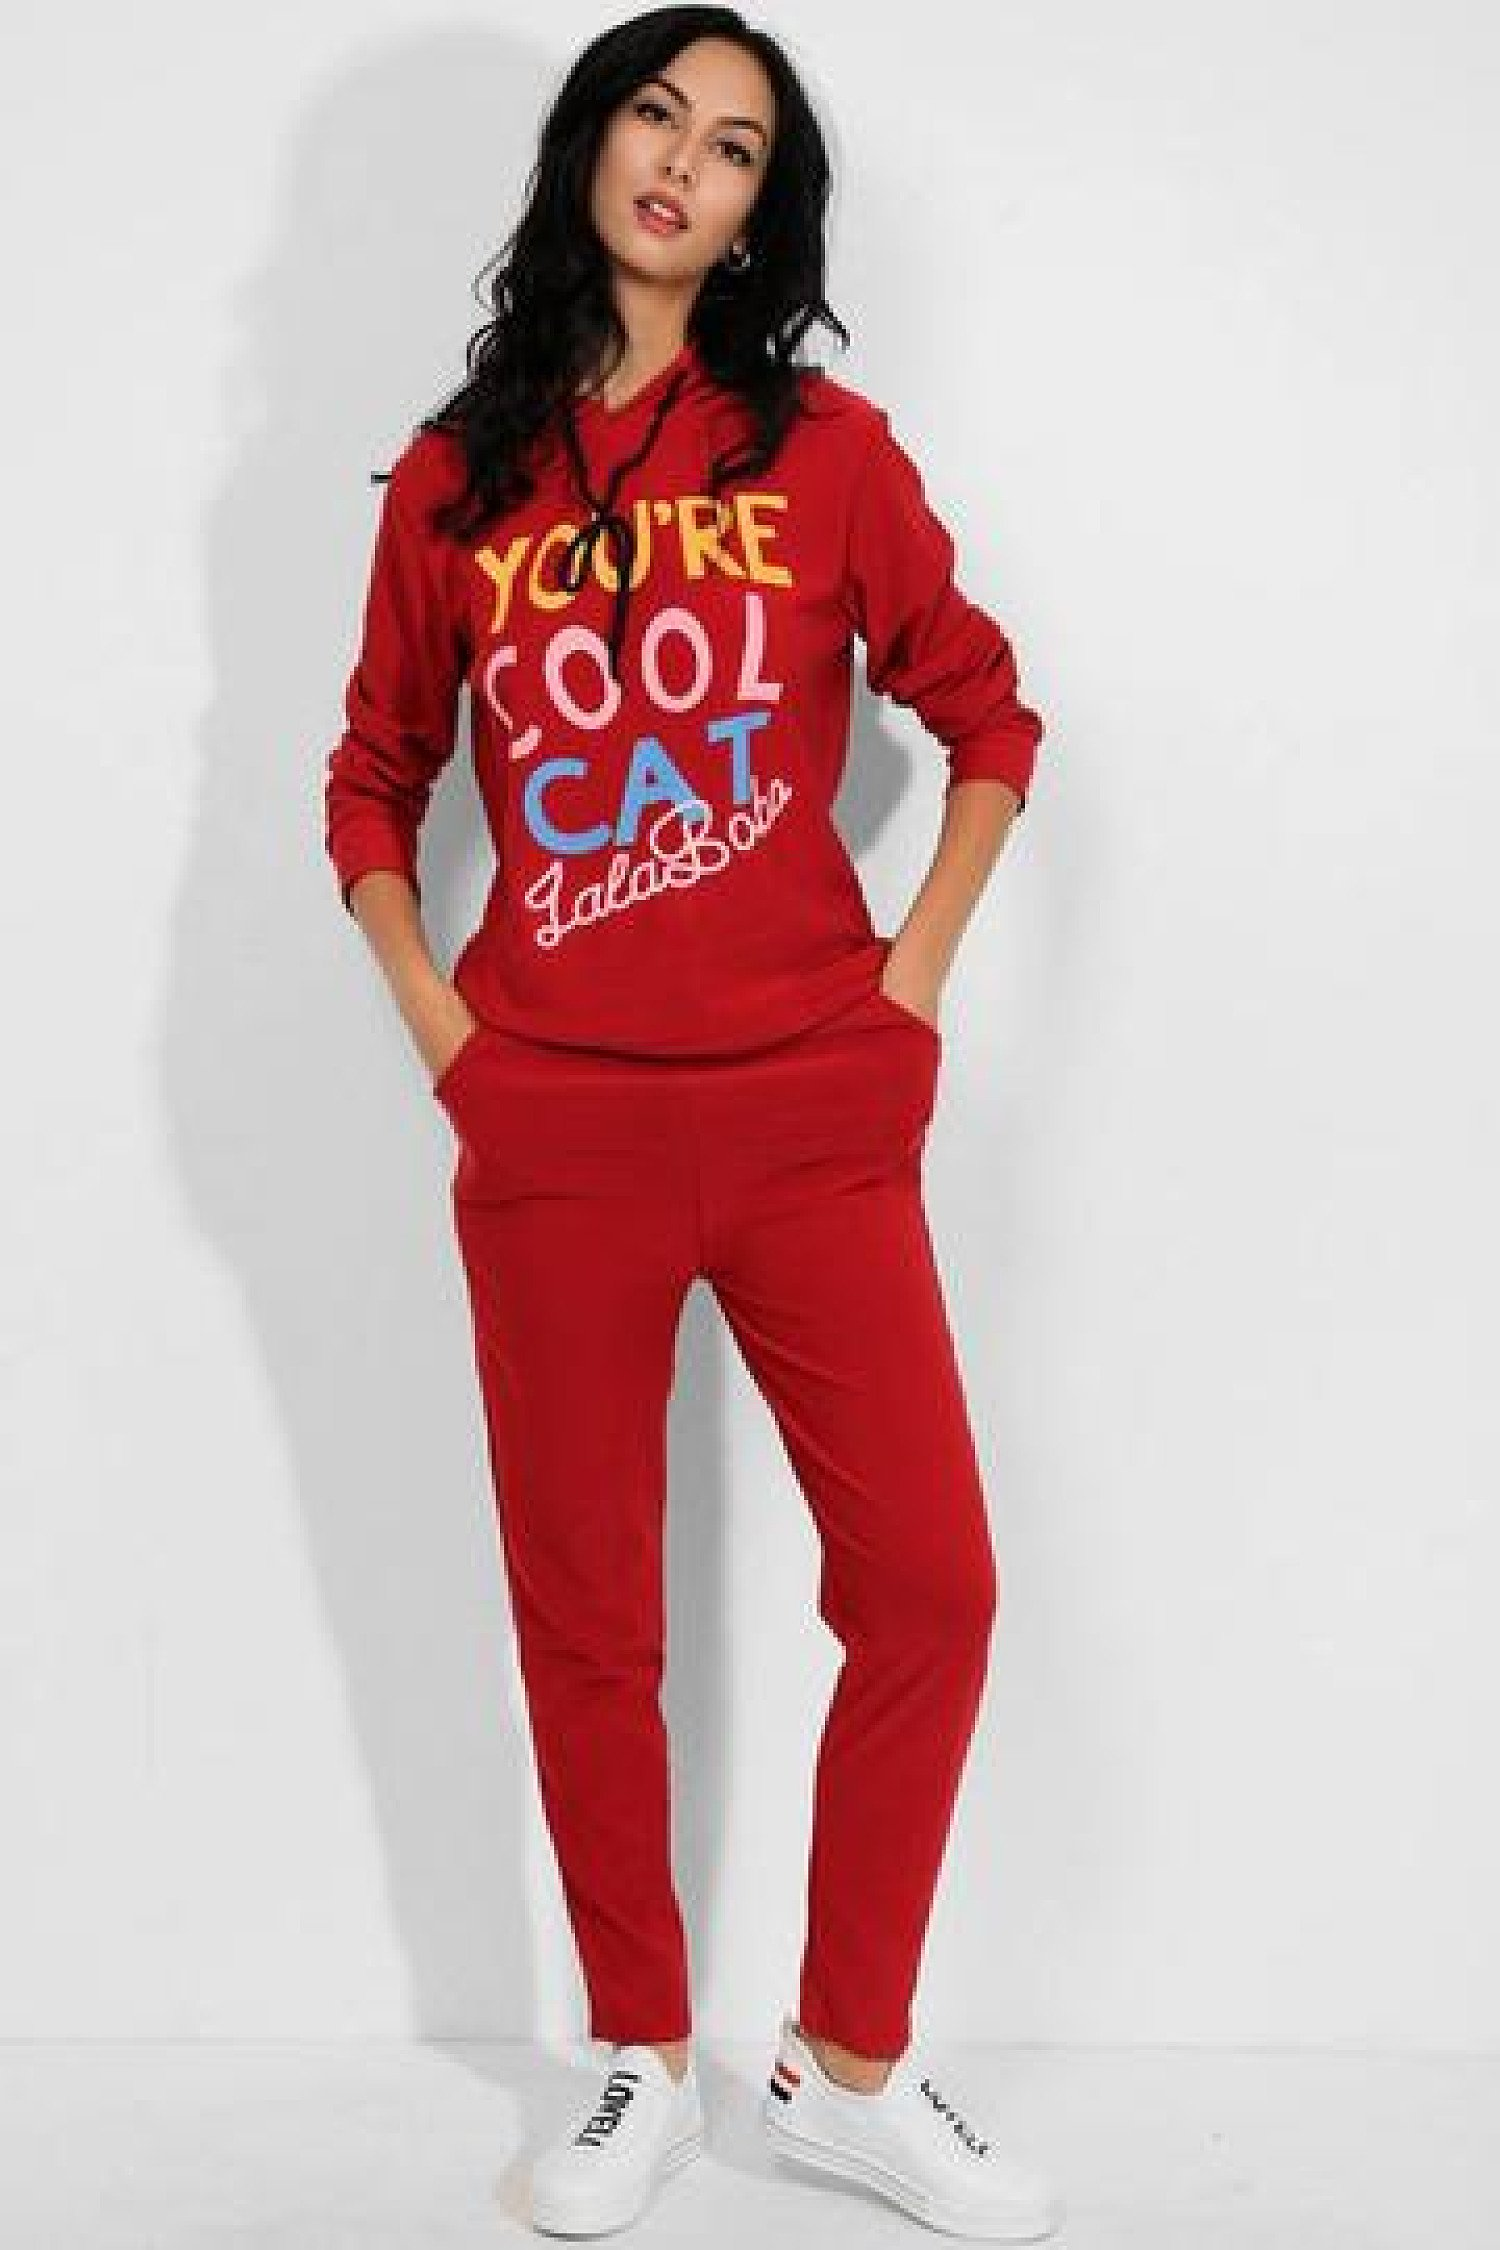 2 Piece Cool Cat Slogan Hooded Tracksuit Free Postage